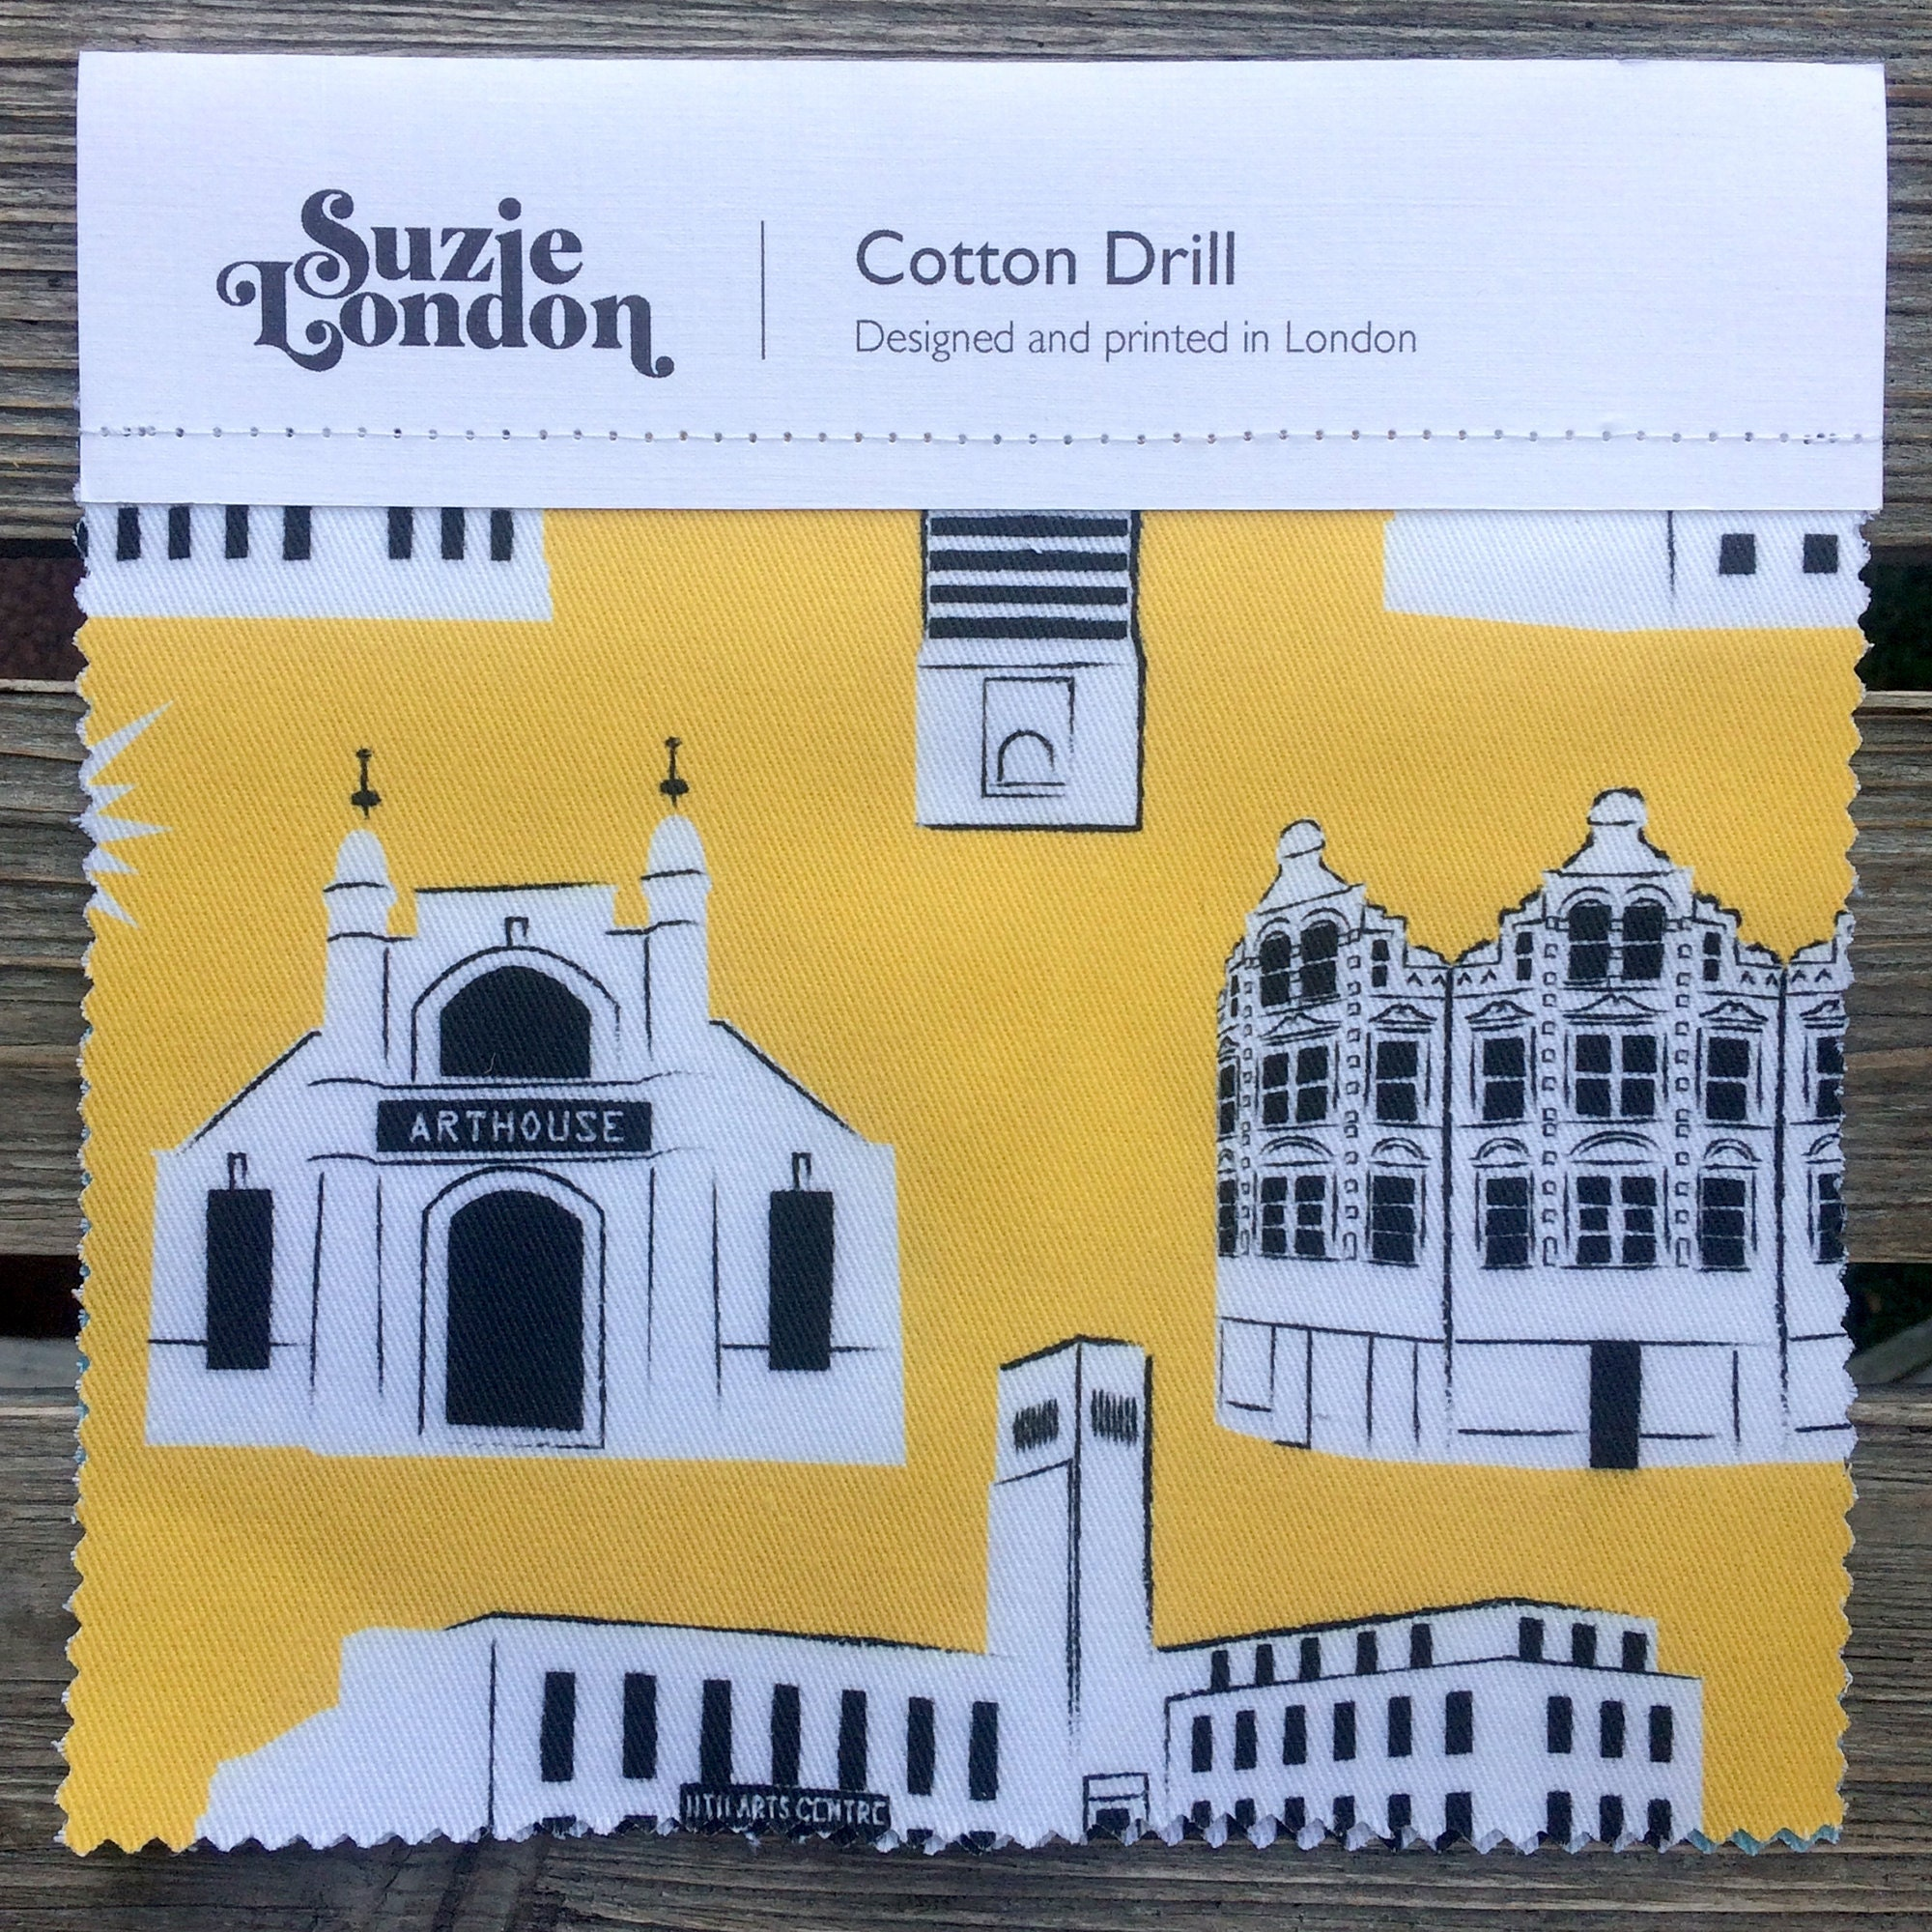 Suzie London Crouch End cotton drill fabric swatch at Nest in Crouch End